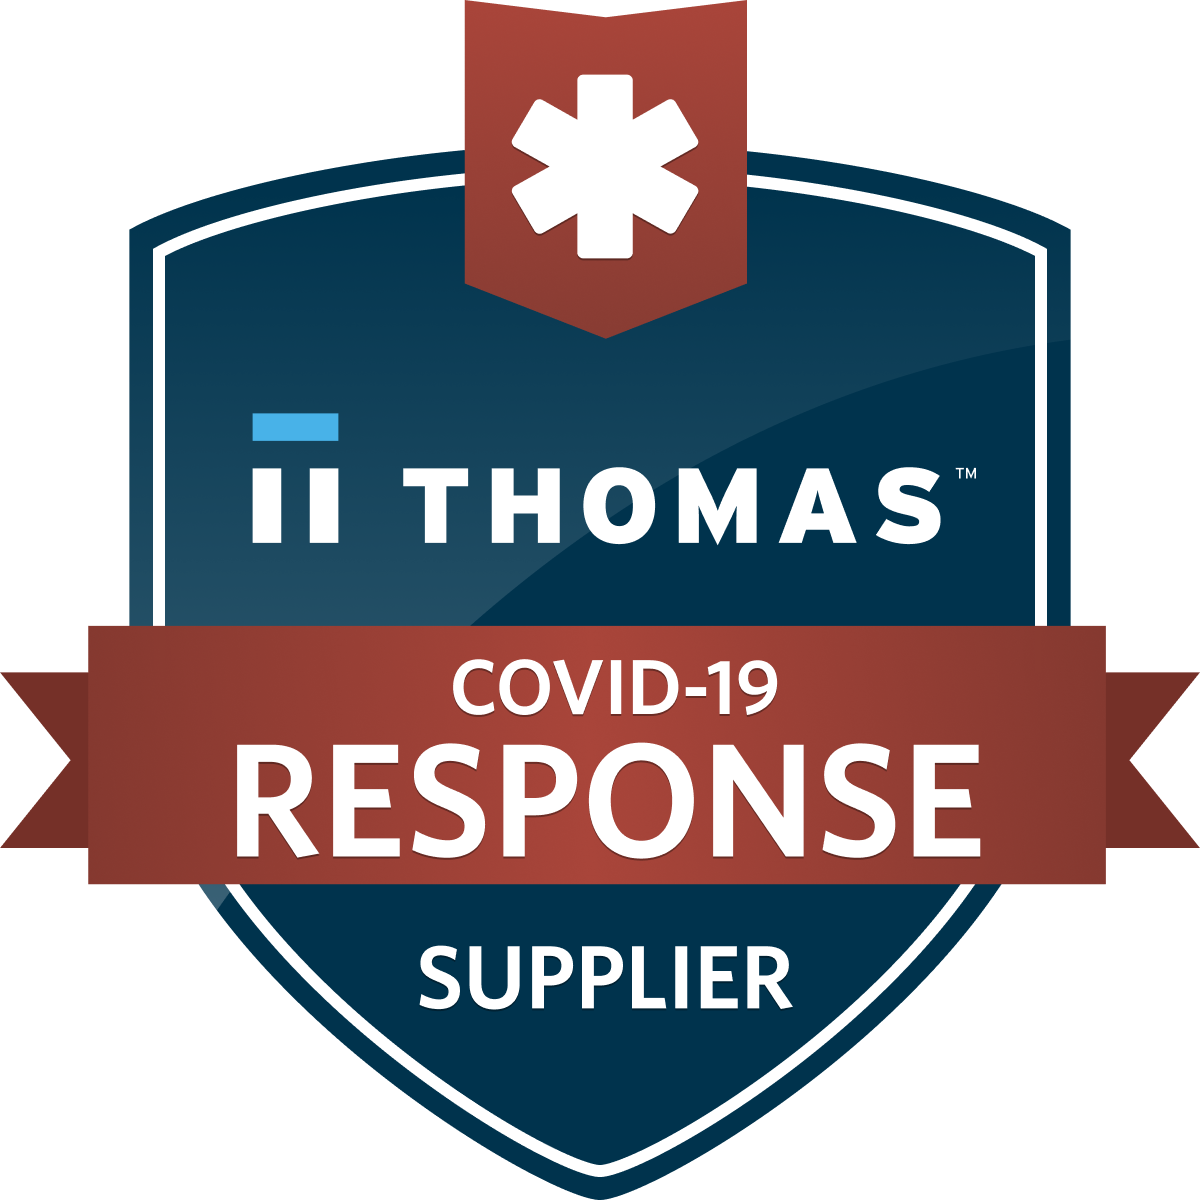 thomas-covid19-response-supplier